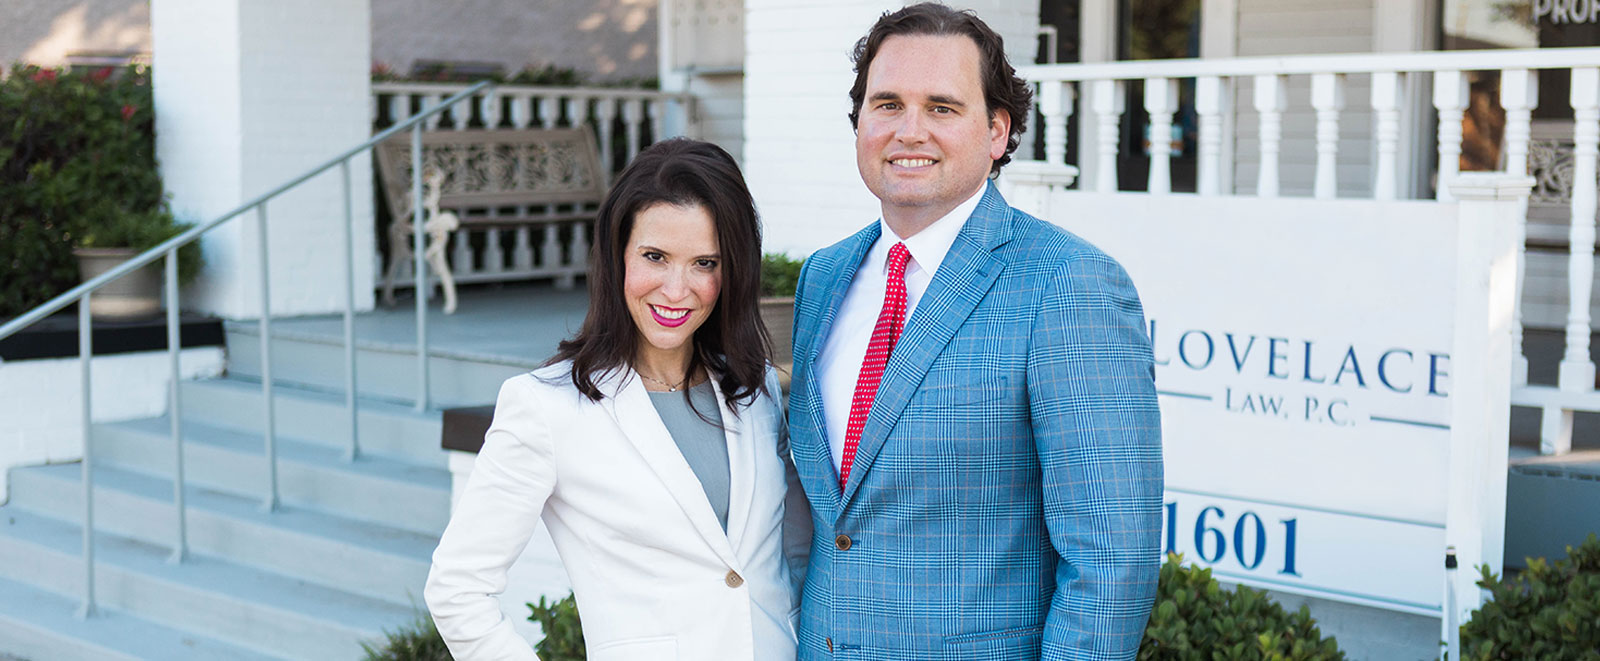 Family Lawyers   Estate Planning   Lovelace Law, P.C.